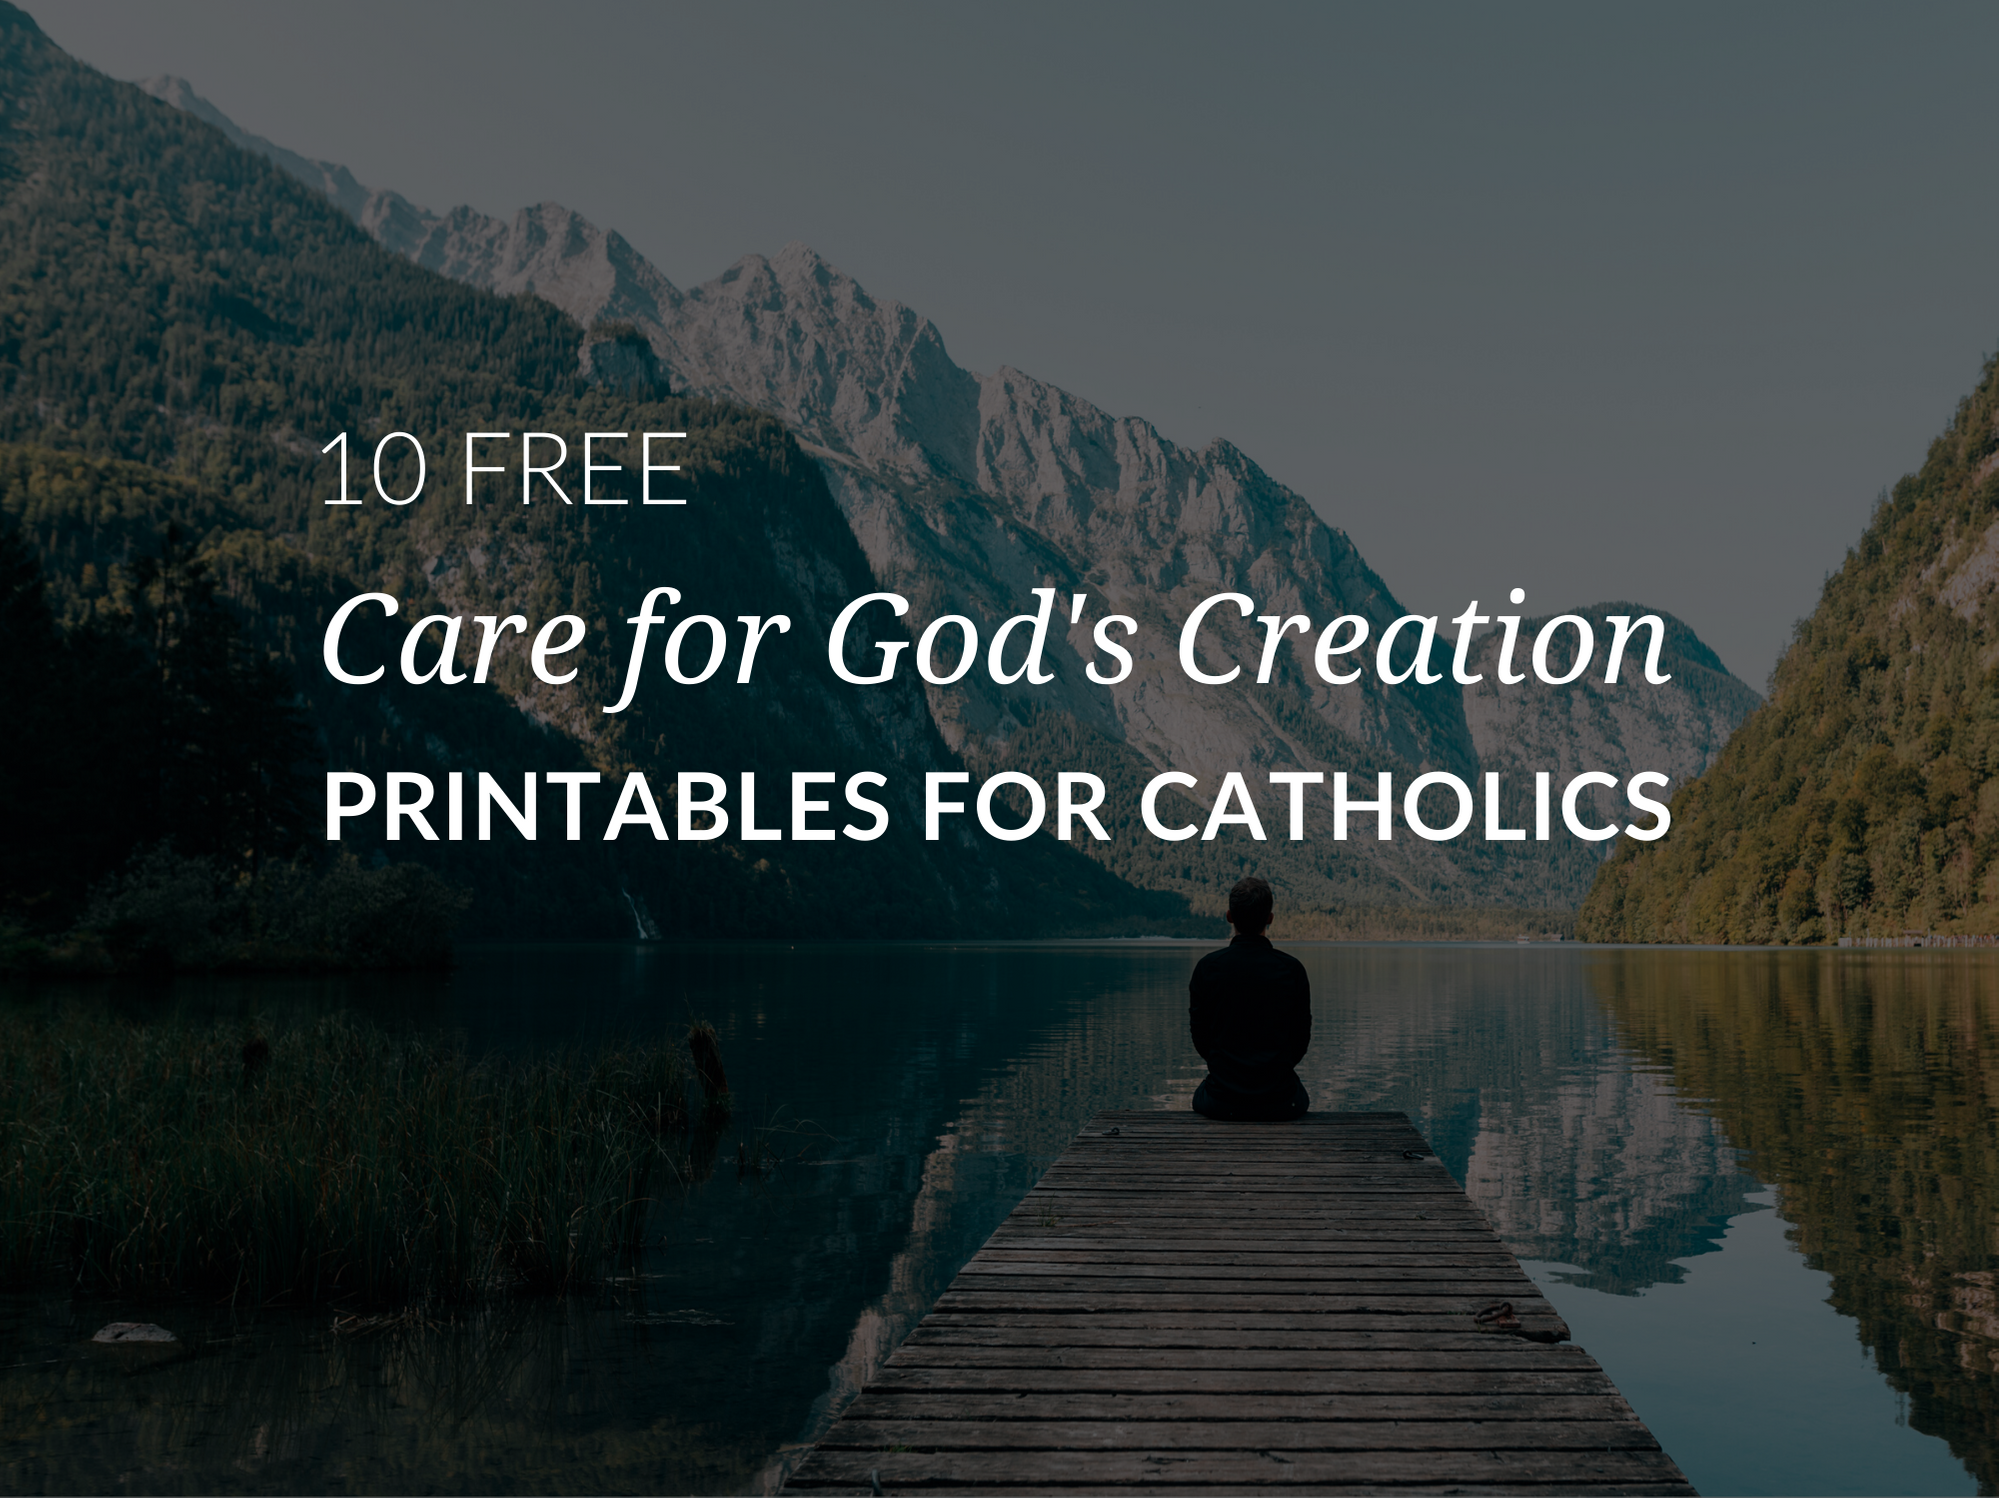 Care for God's Creation Printables for Catholics